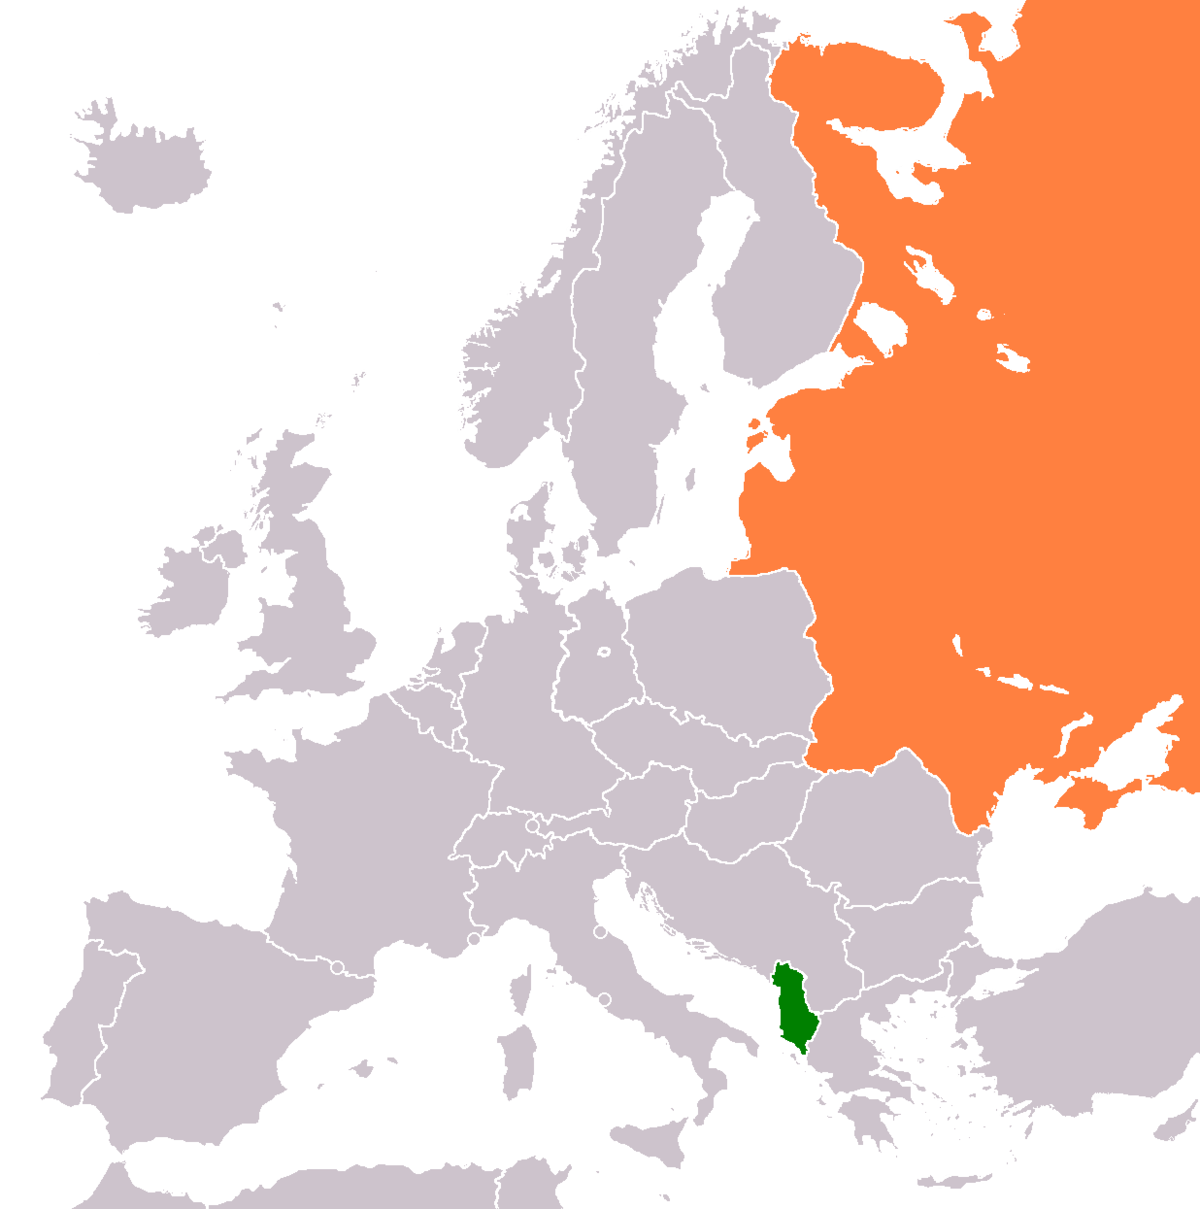 yugoslavia relationship with ussr